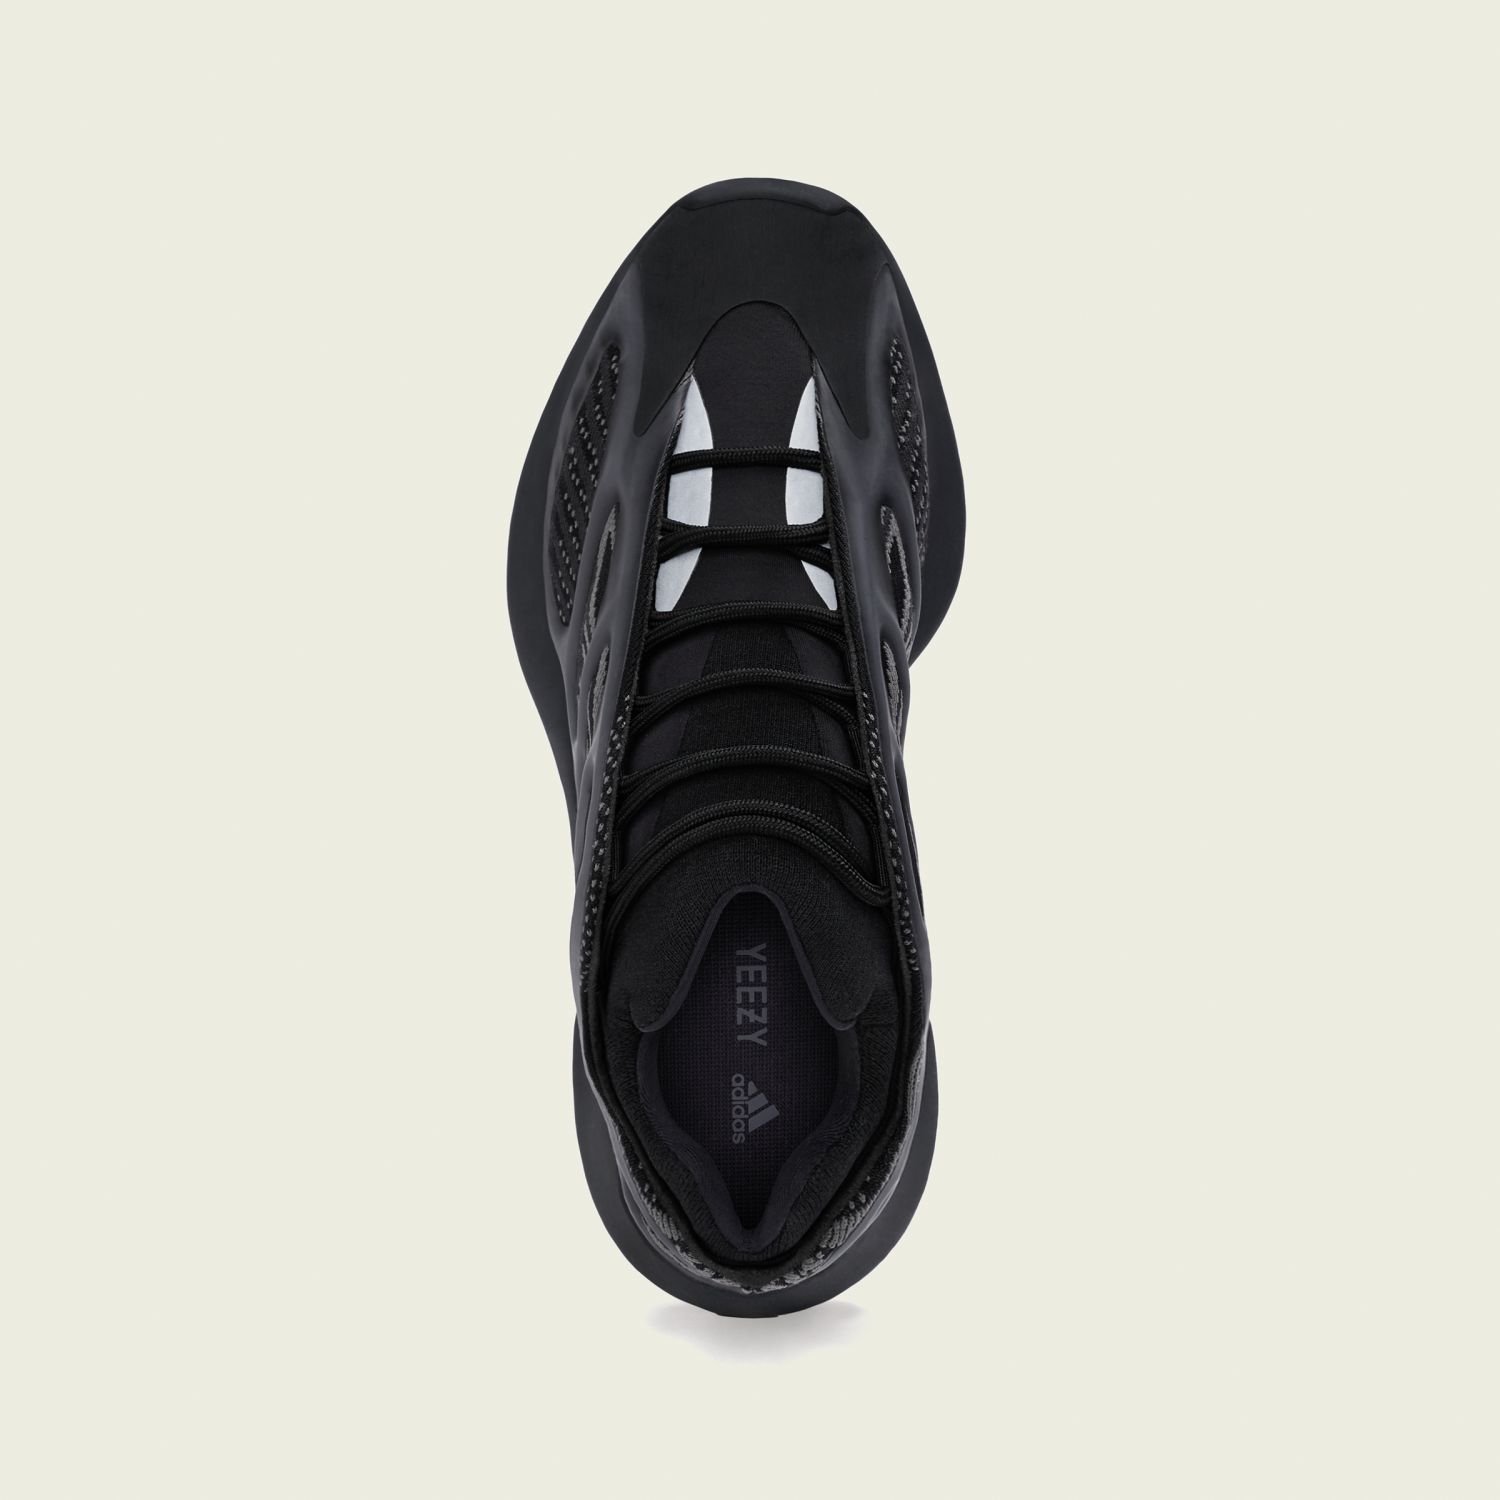 adidas-yeezy-boost-700-v3-black-release-20200411